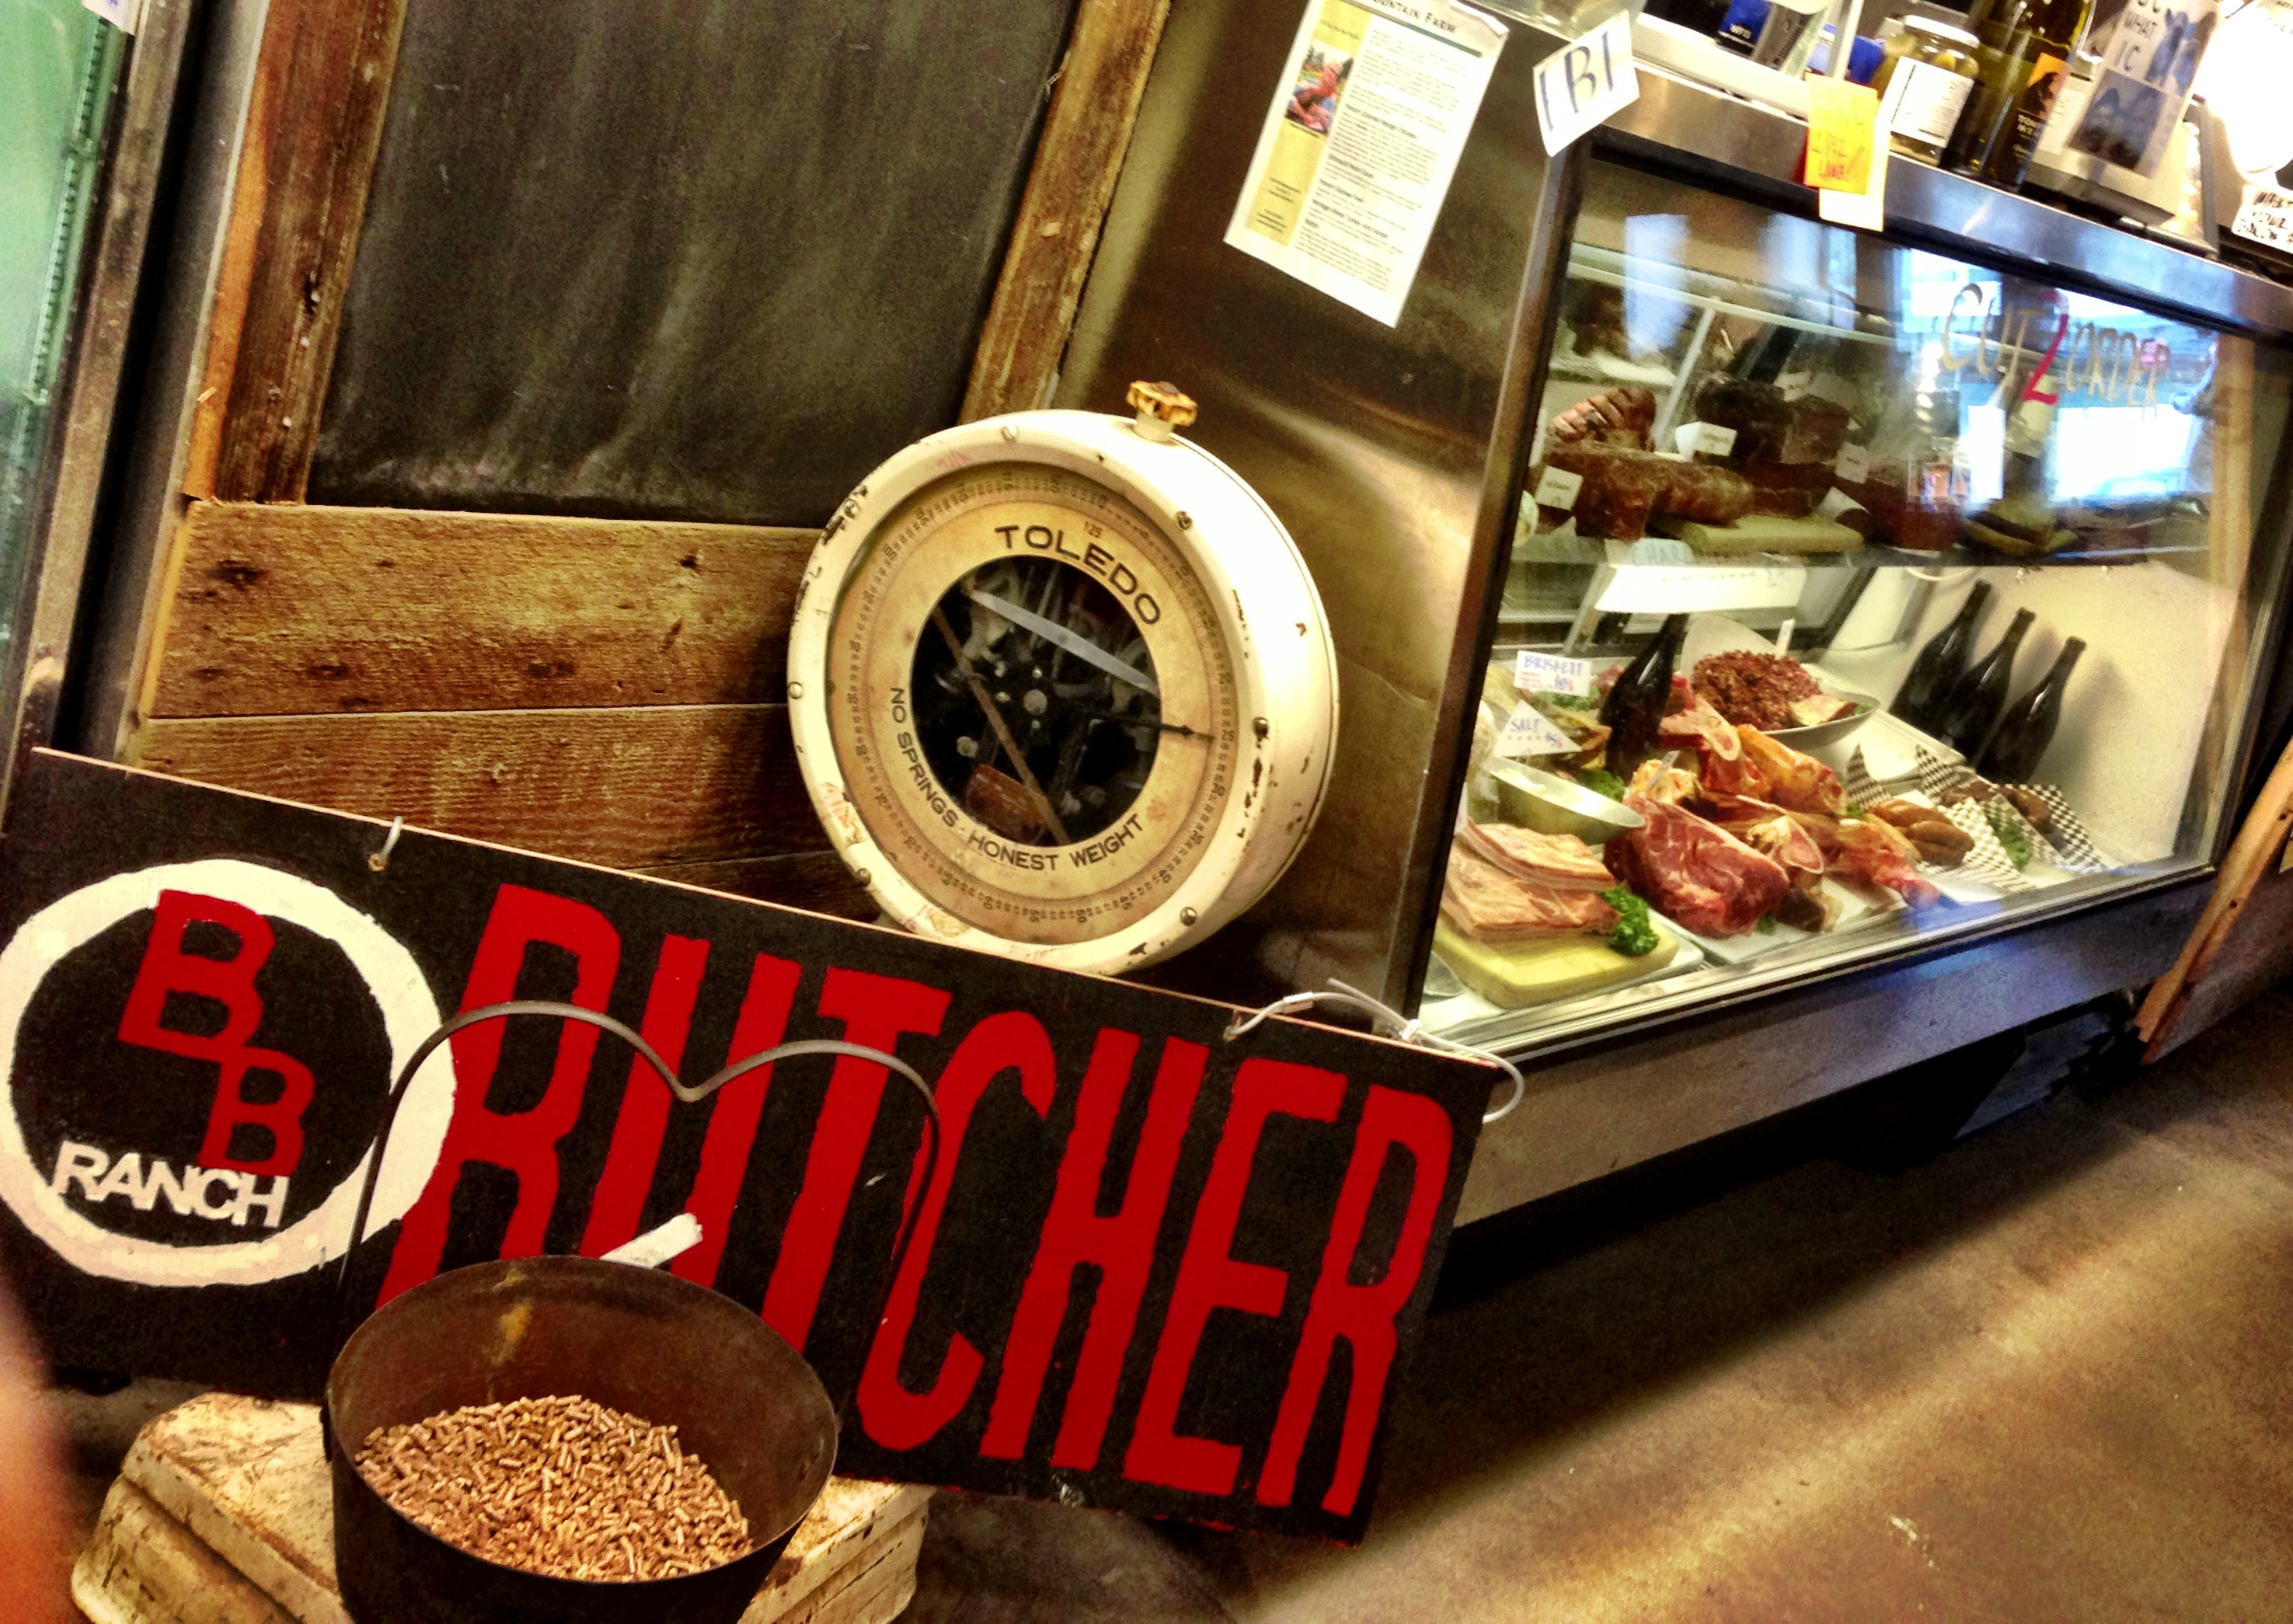 BB Butcher